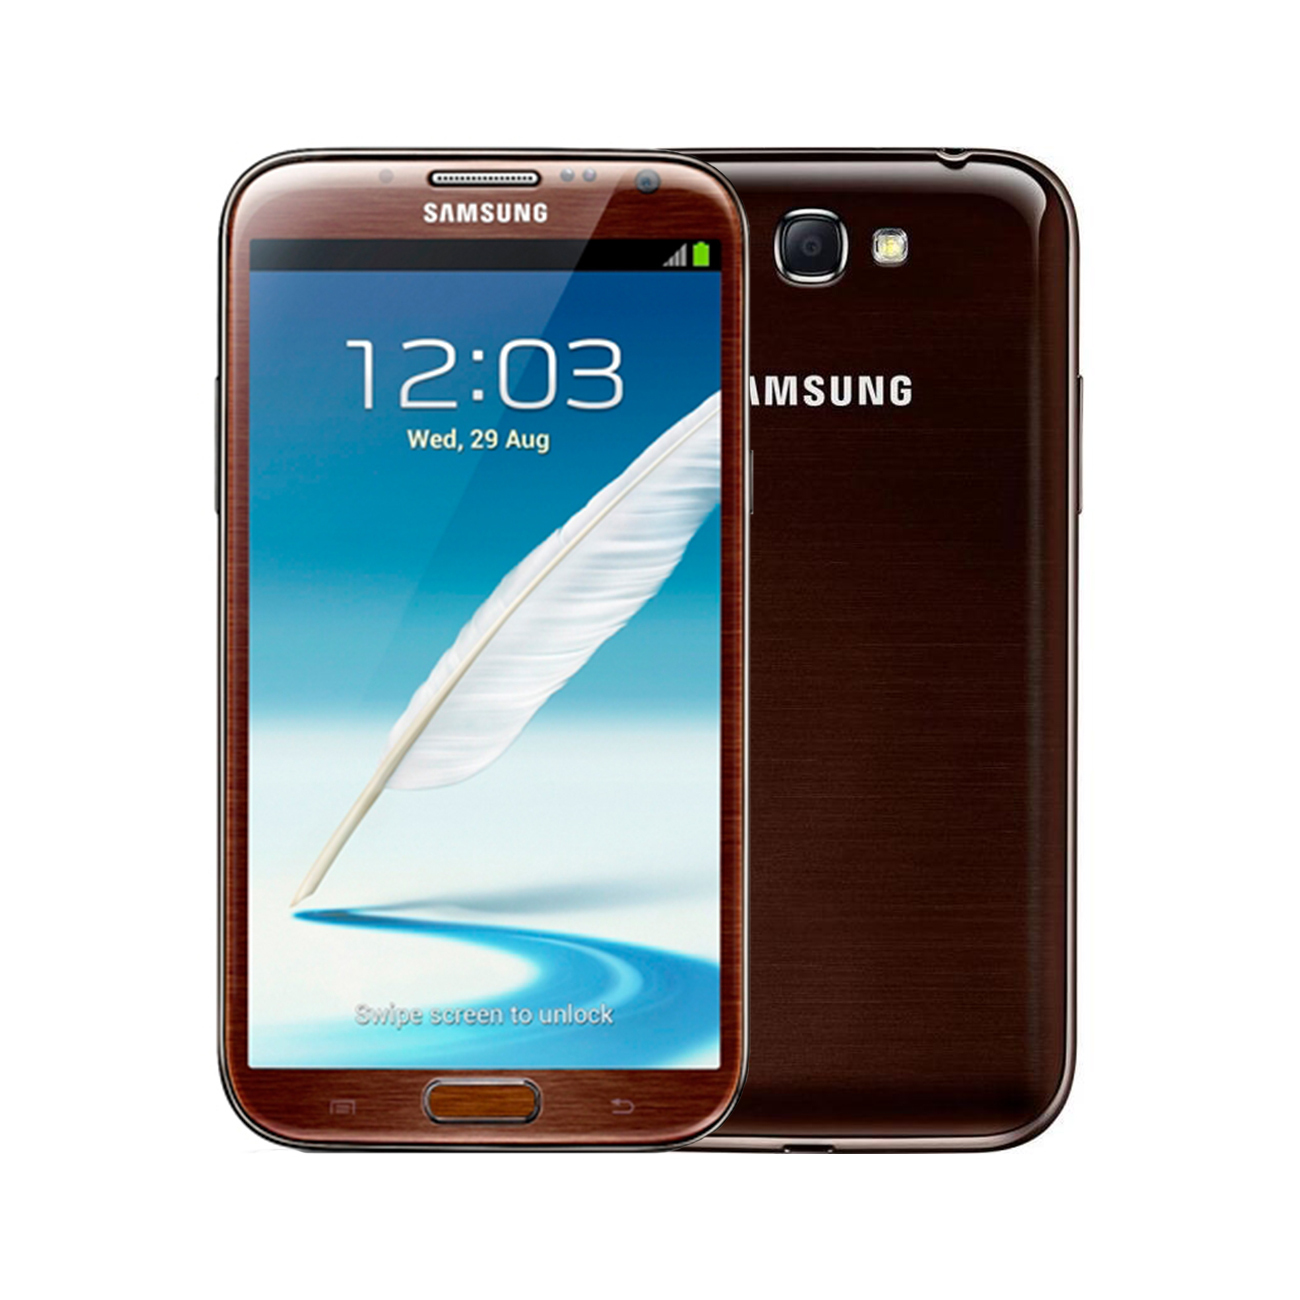 Samsung Galaxy Note 2 [16GB] [Amber Brown] [Imperfect]